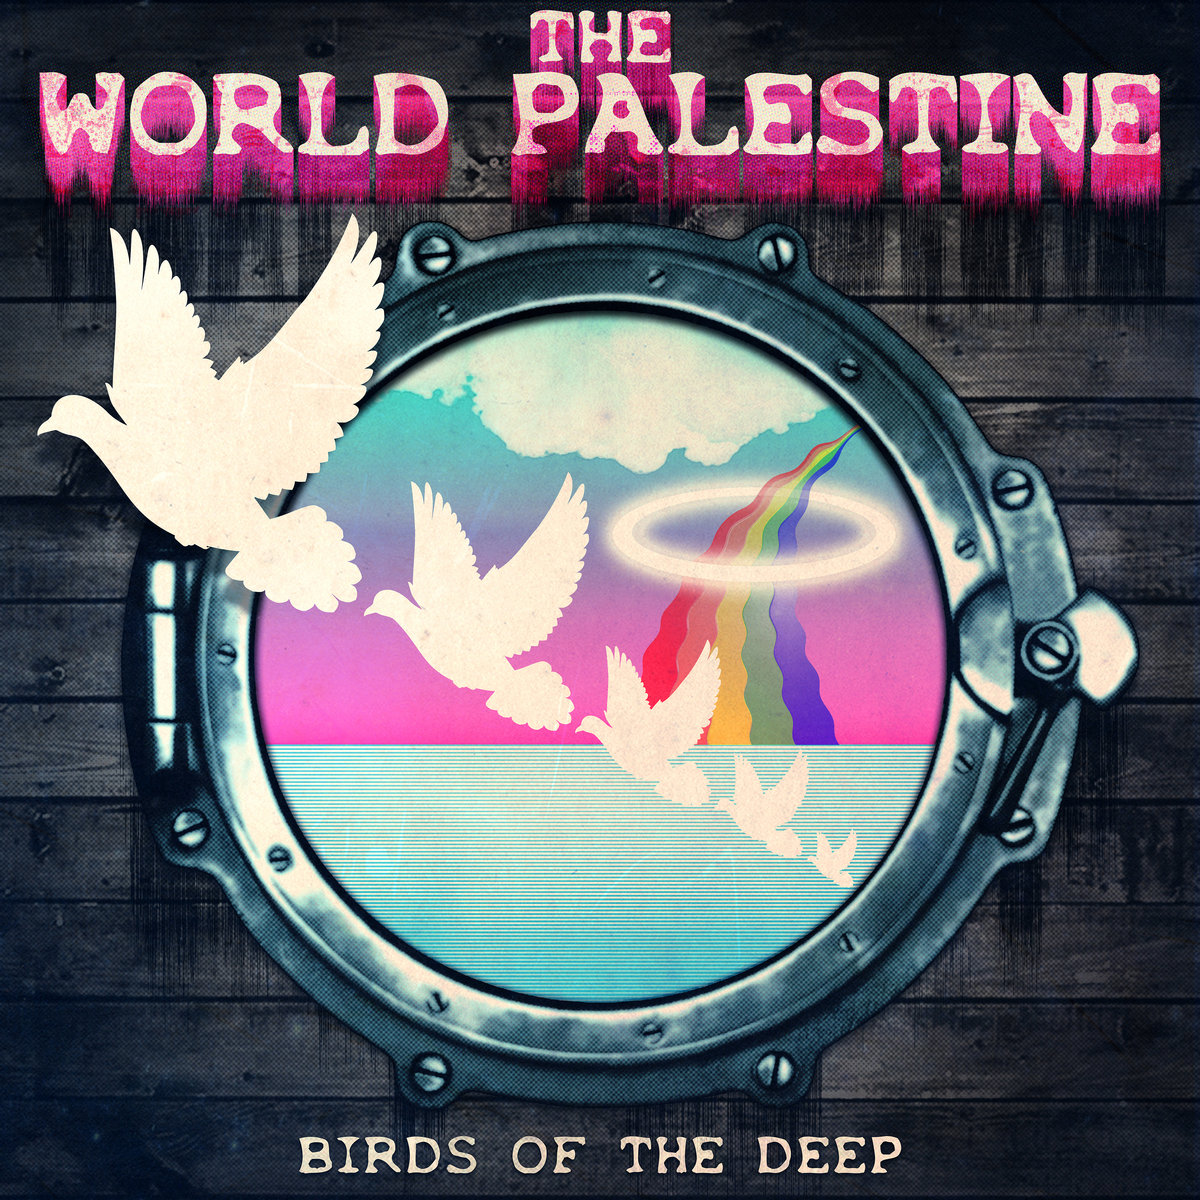 The World Palestine - Birds of the Deep